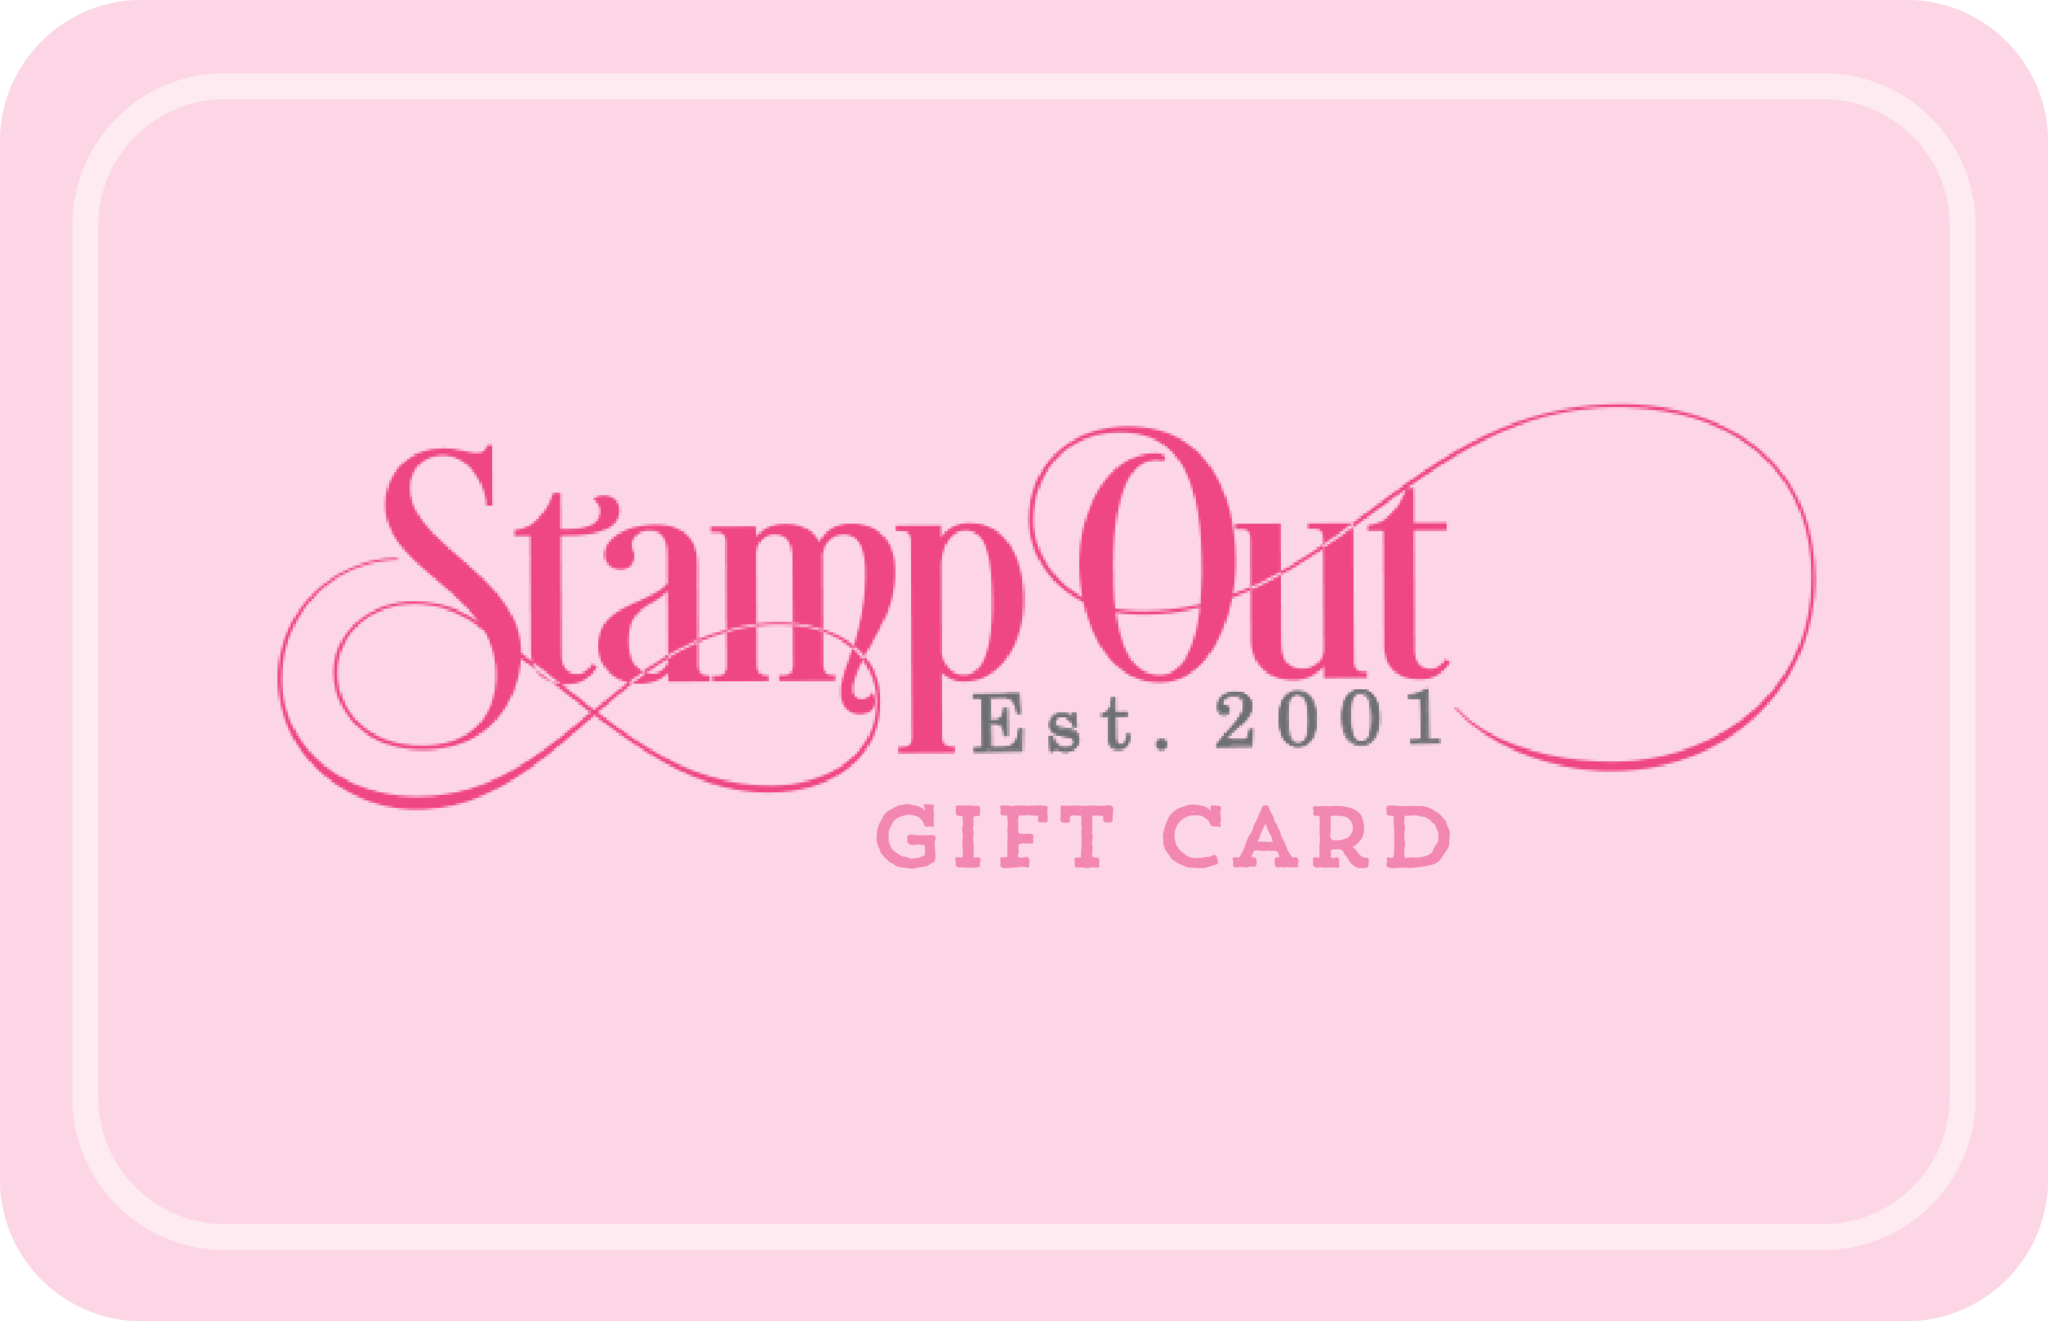 Electronic Gift Card – Stamp Out